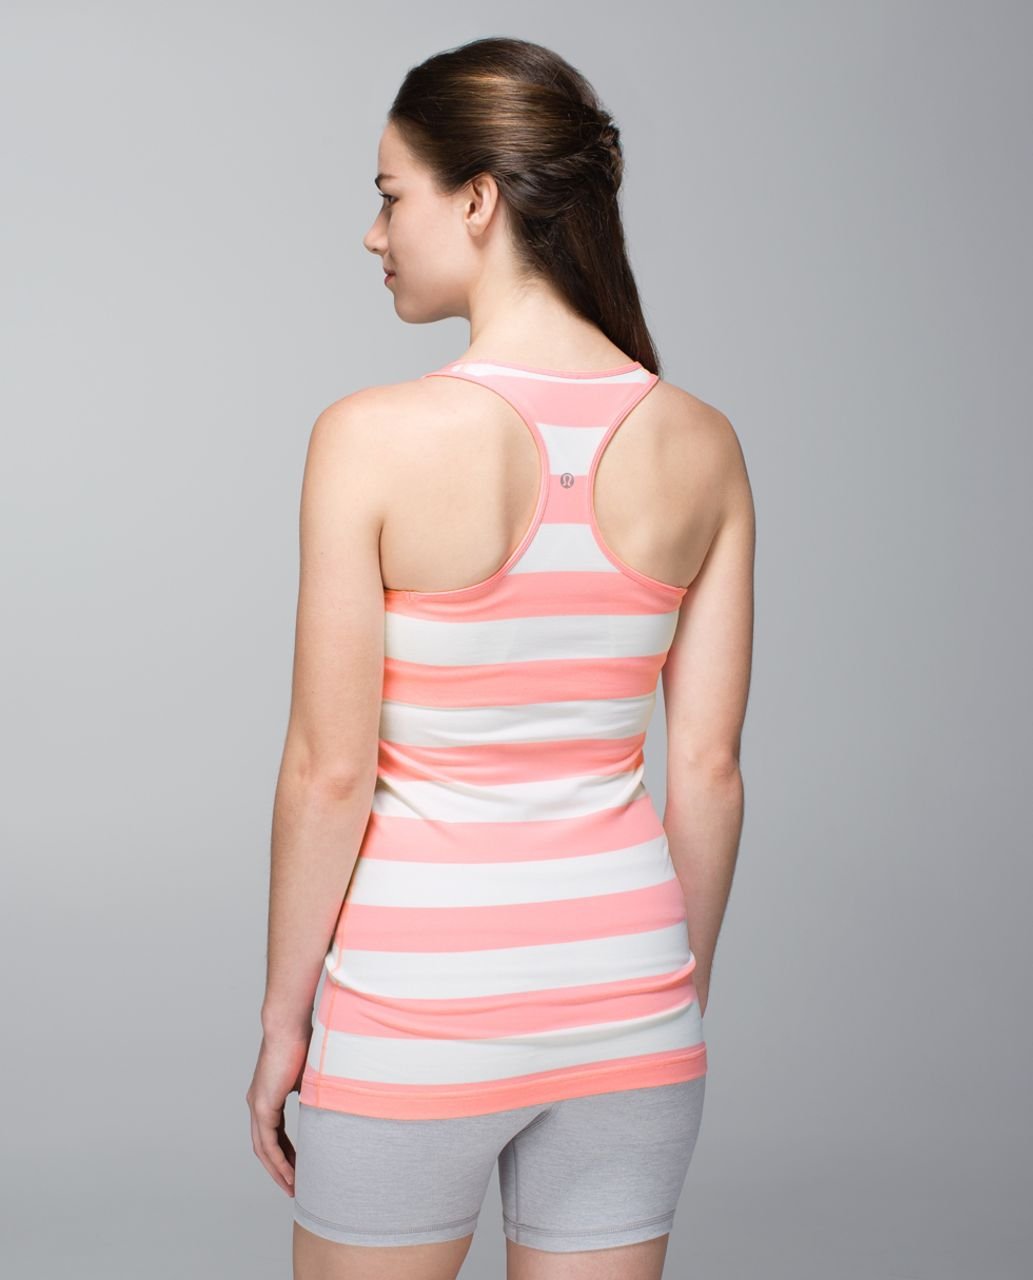 Lululemon Cool Racerback - Steep Stripe Bleached Coral Horizontal / Bleached Coral